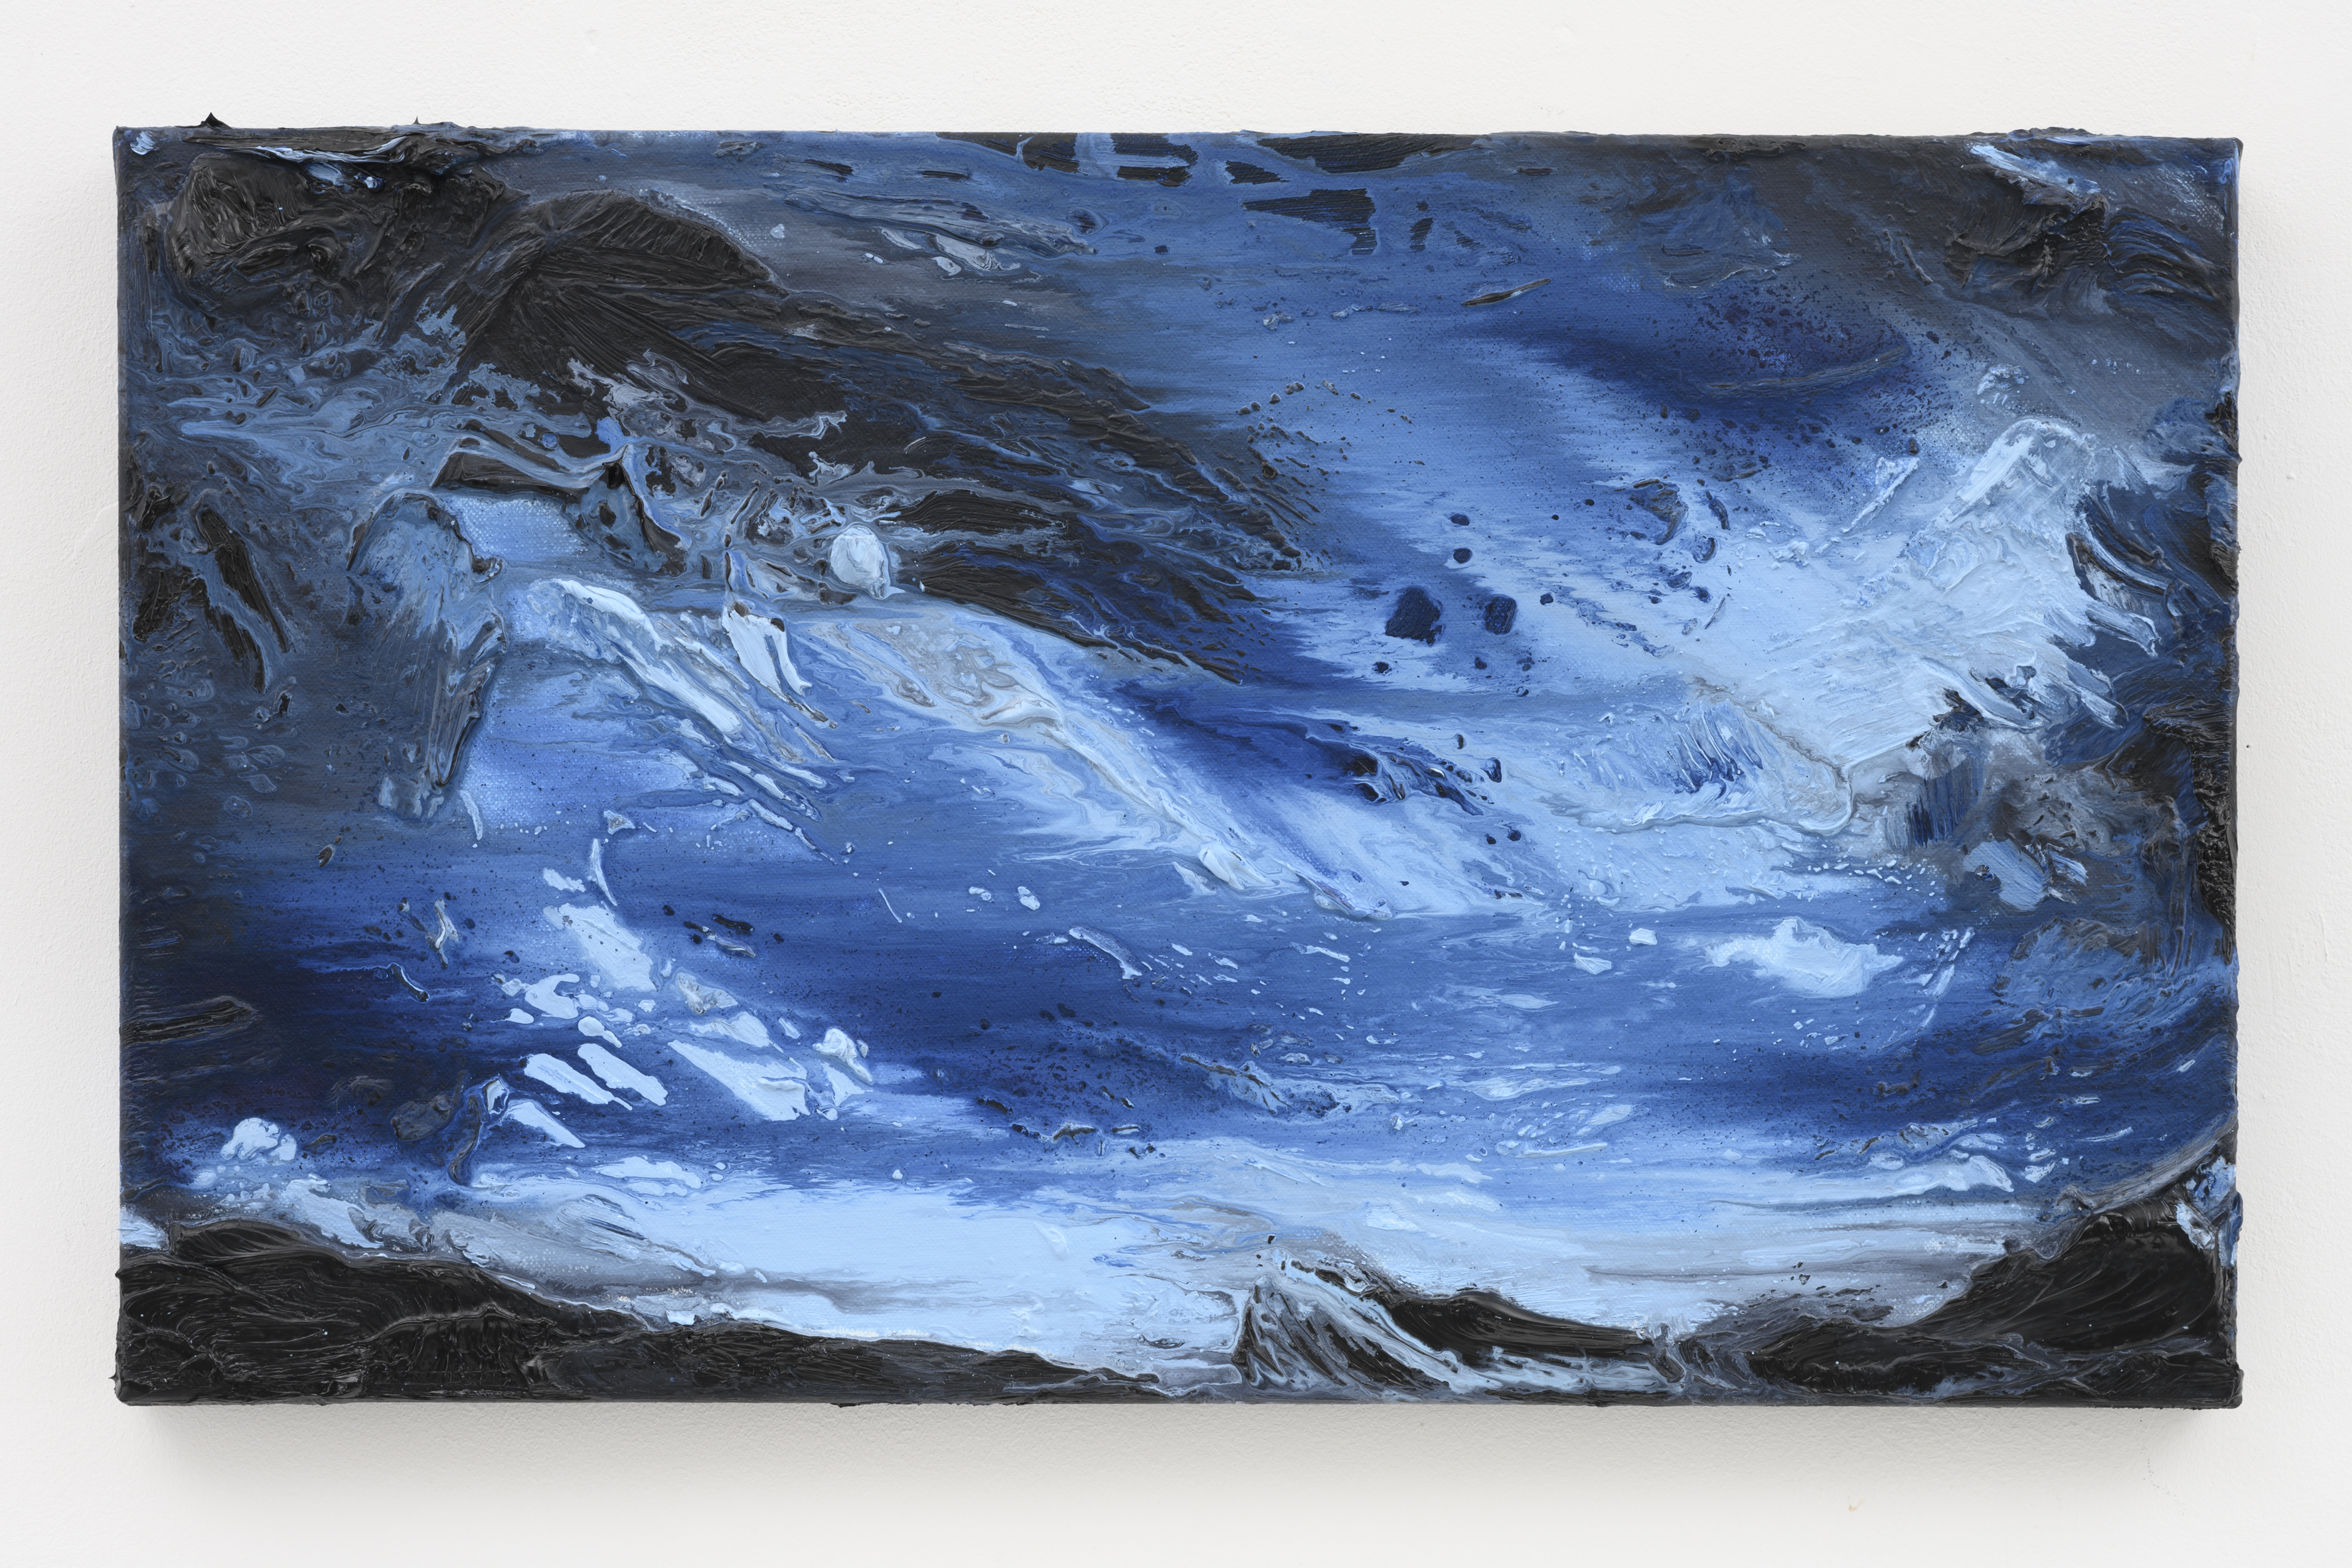 """""""My Norway, The Blues of Norway"""", 30 x 50 cm. oil on linen 2019 (Norway)"""